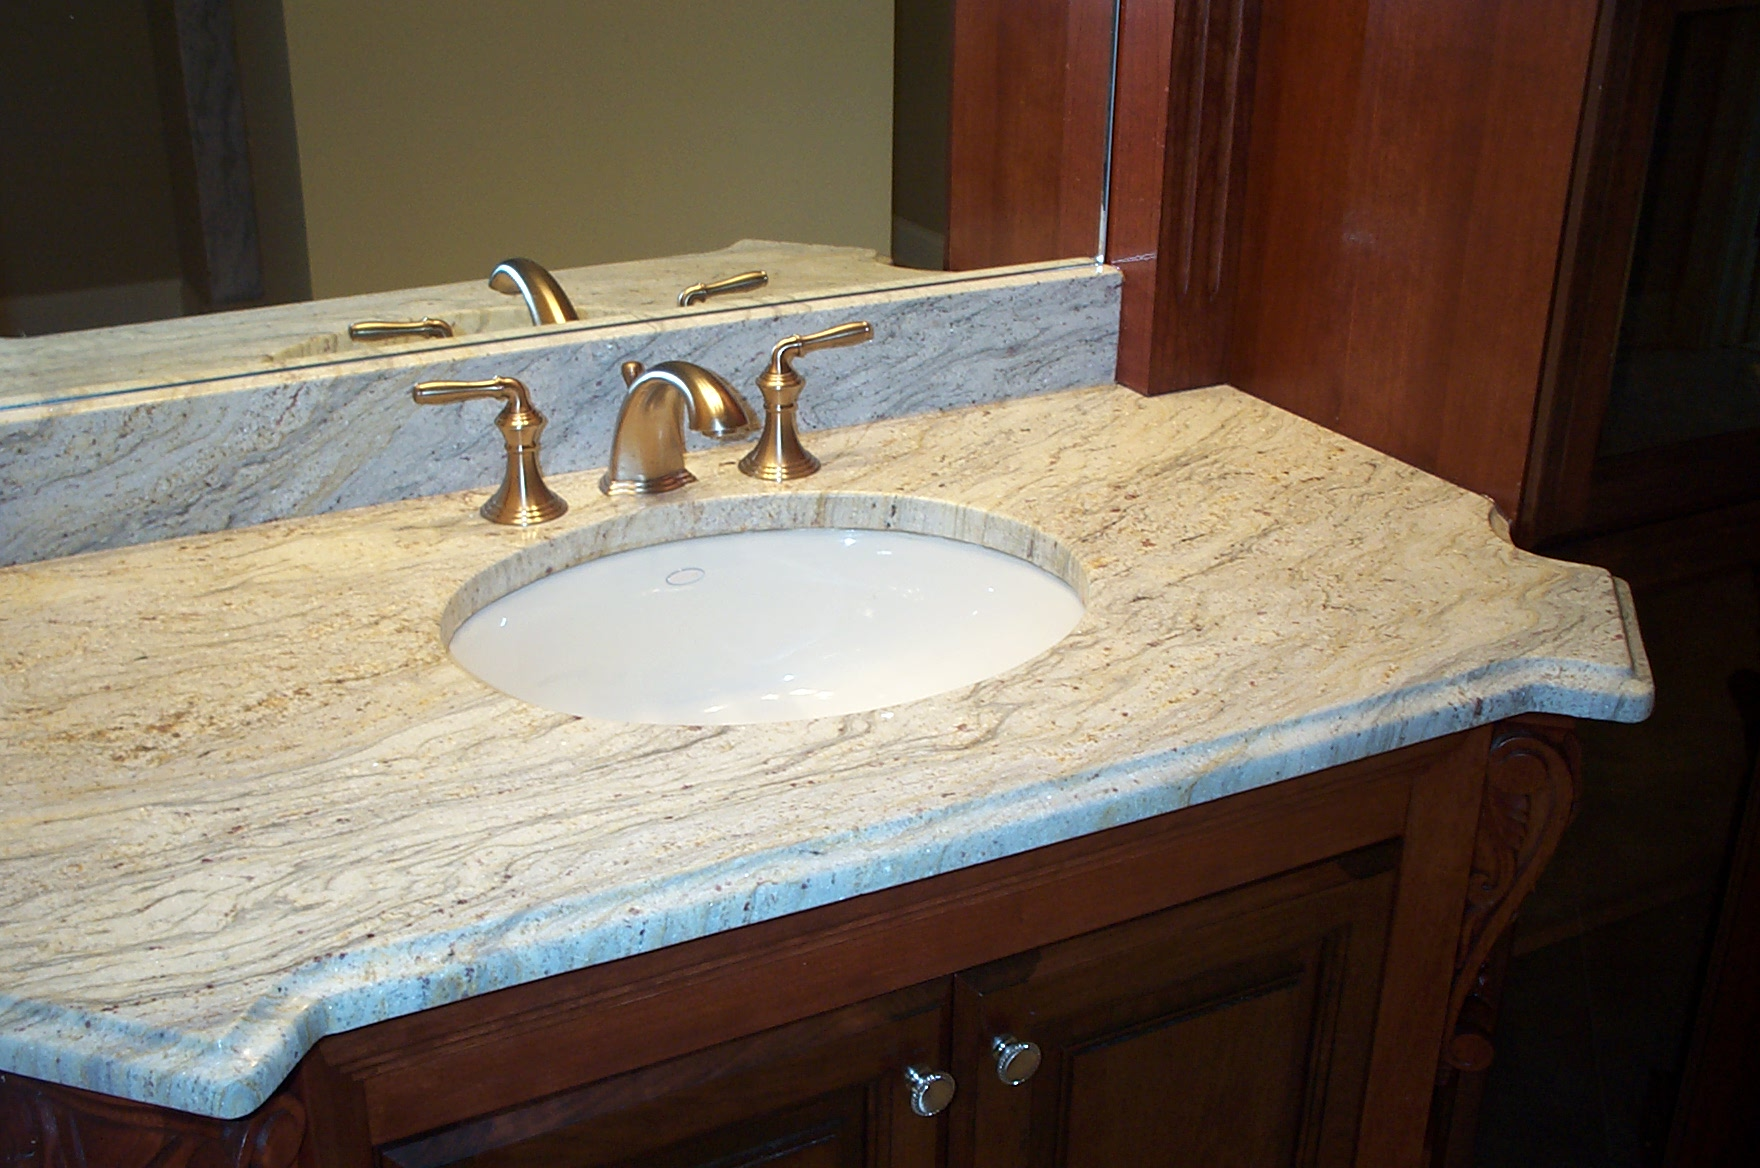 Top Granite : ... services from granite fabrication to granite counter top installation